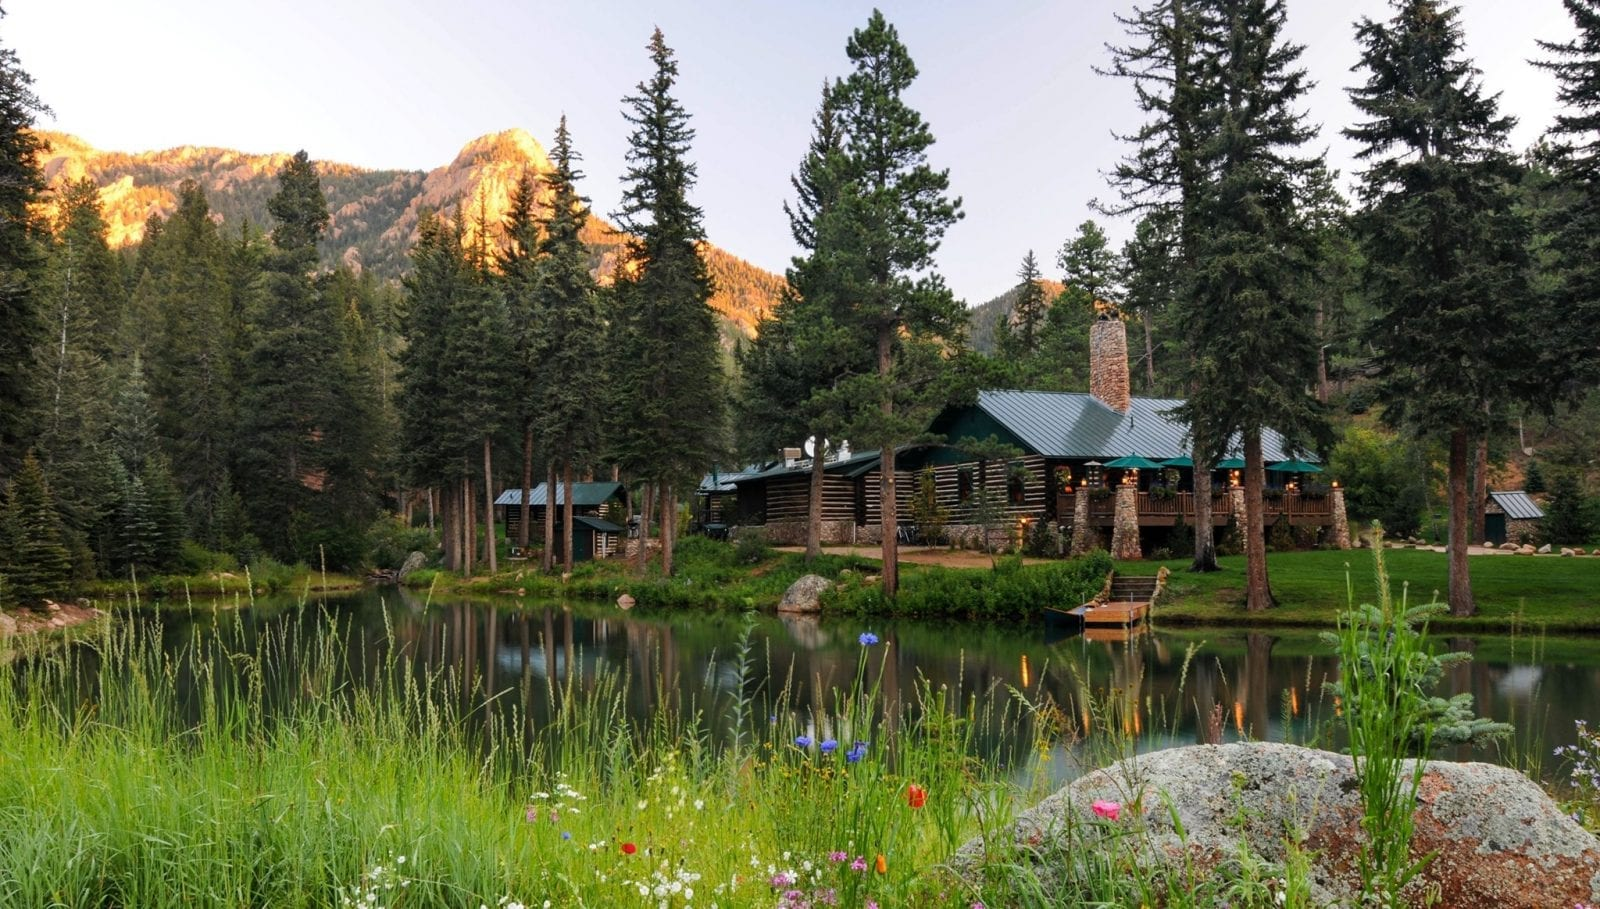 Image of the Ranch at Emerald Valley part of the Broadmoor in Colorado